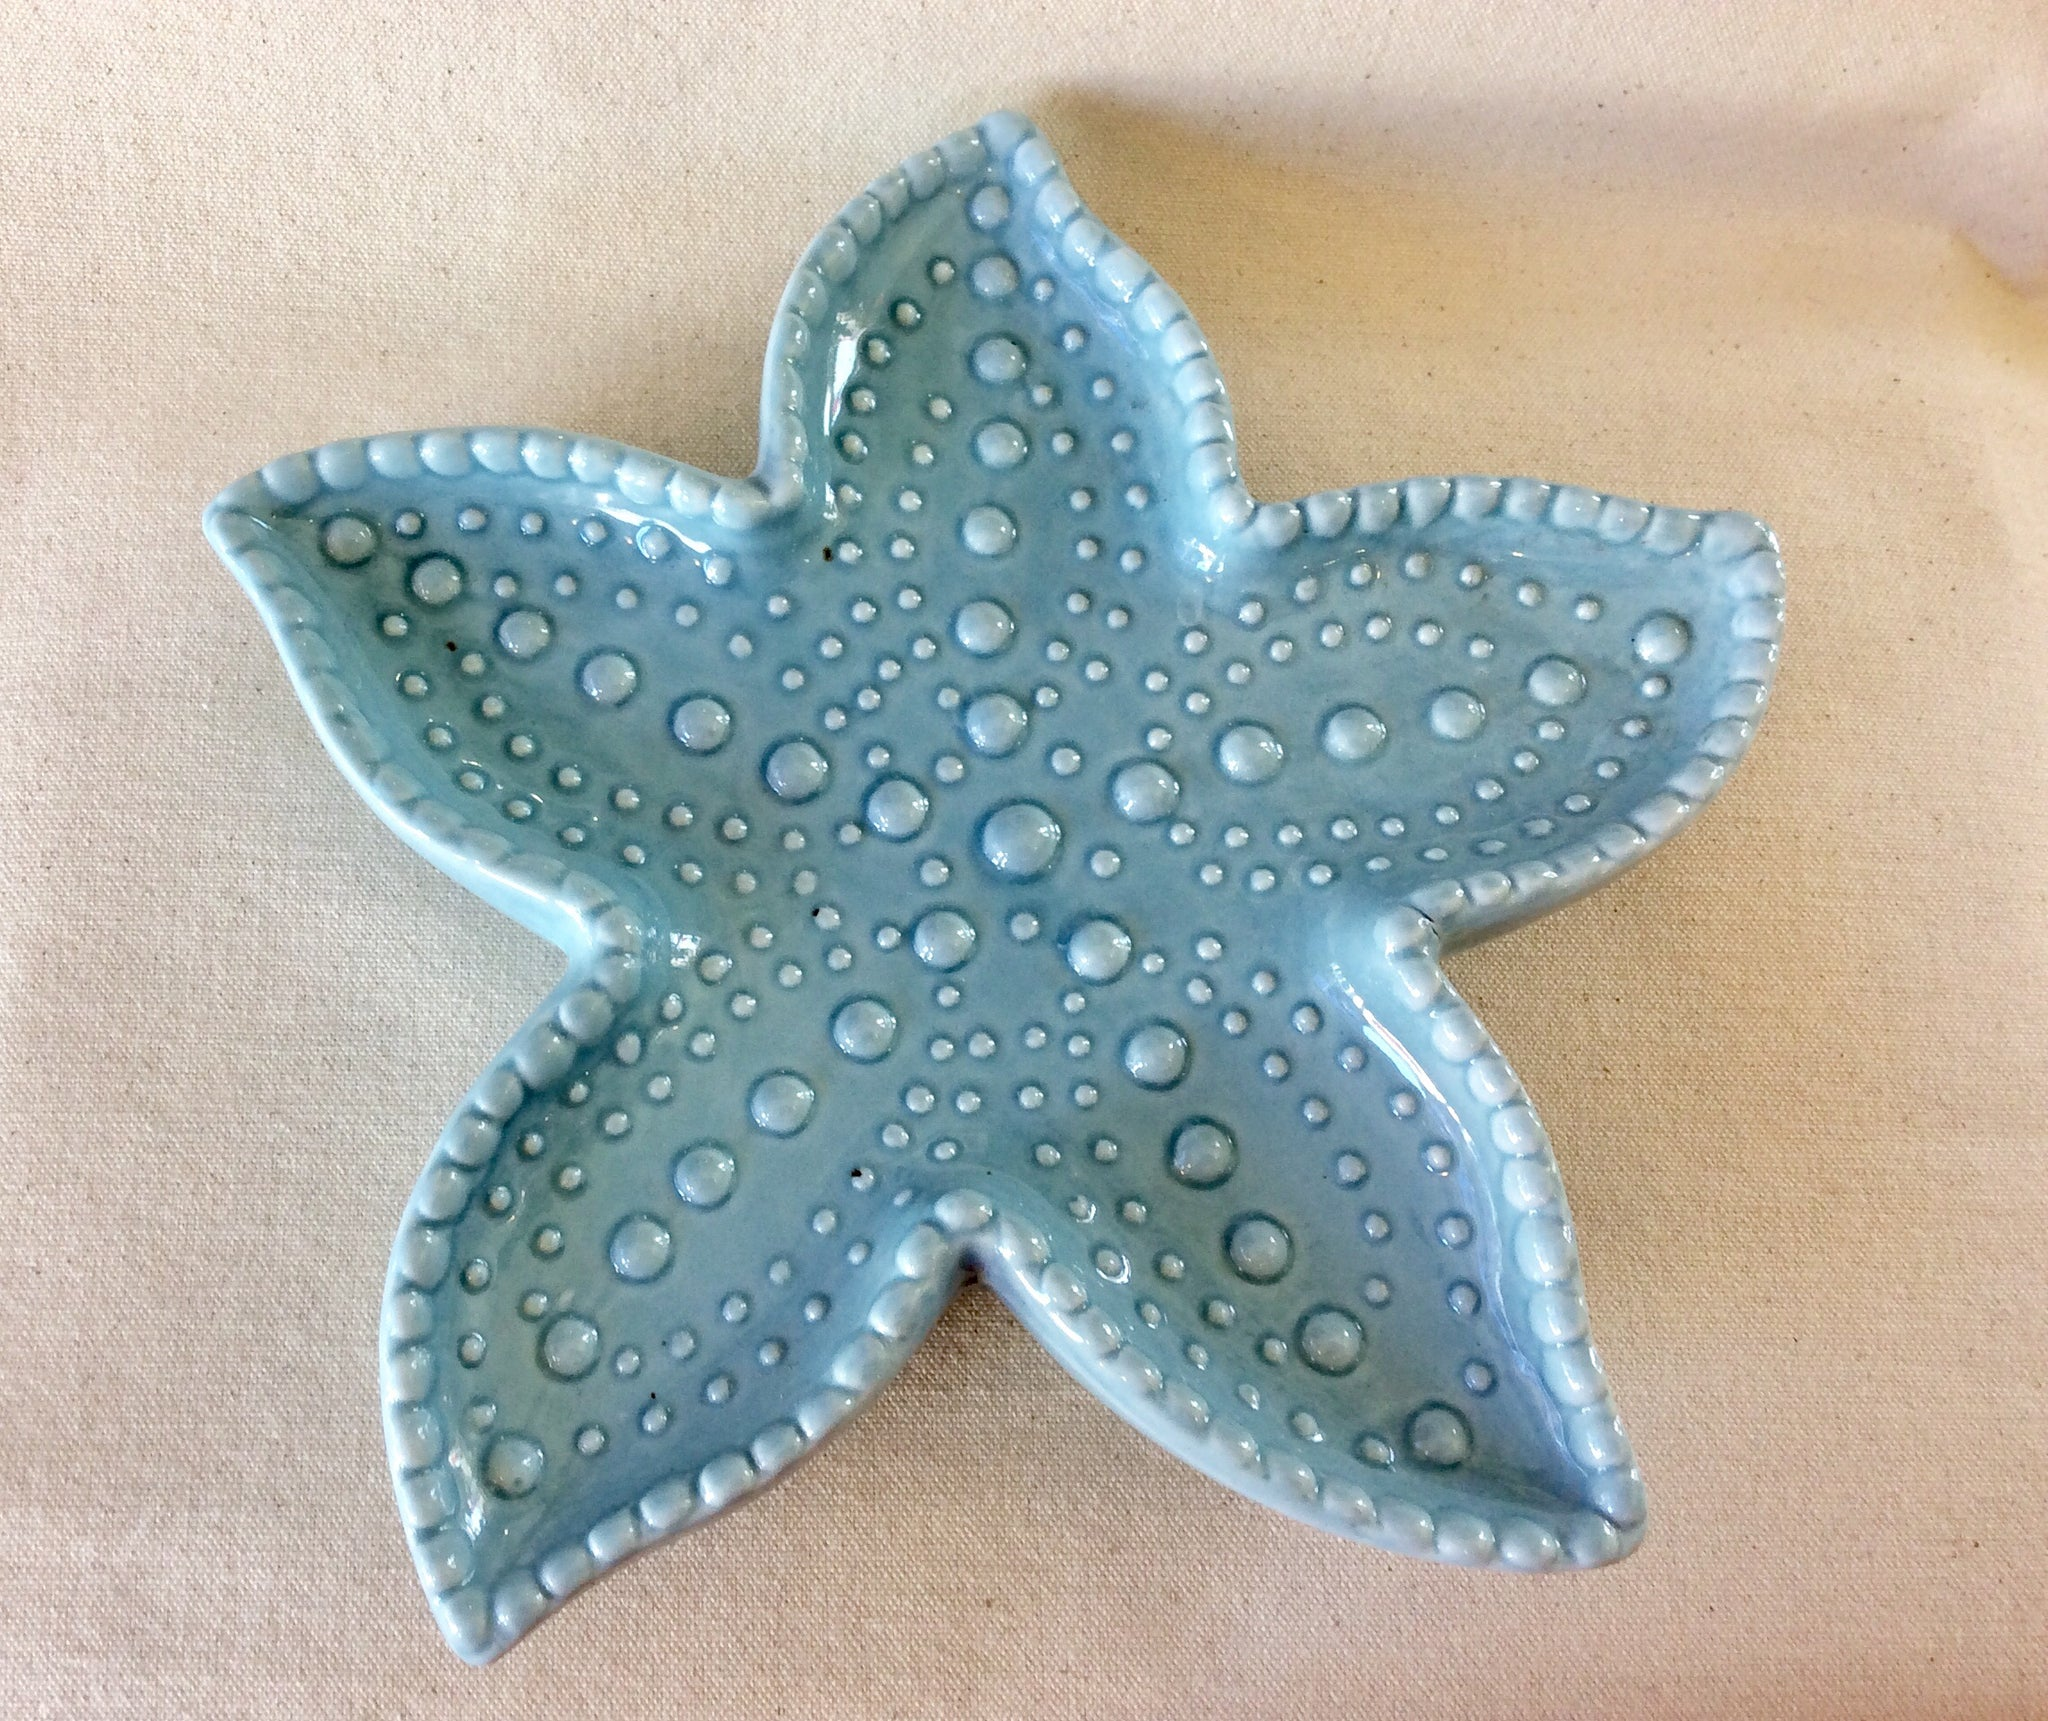 Starfish Plate, Blue Ceramic